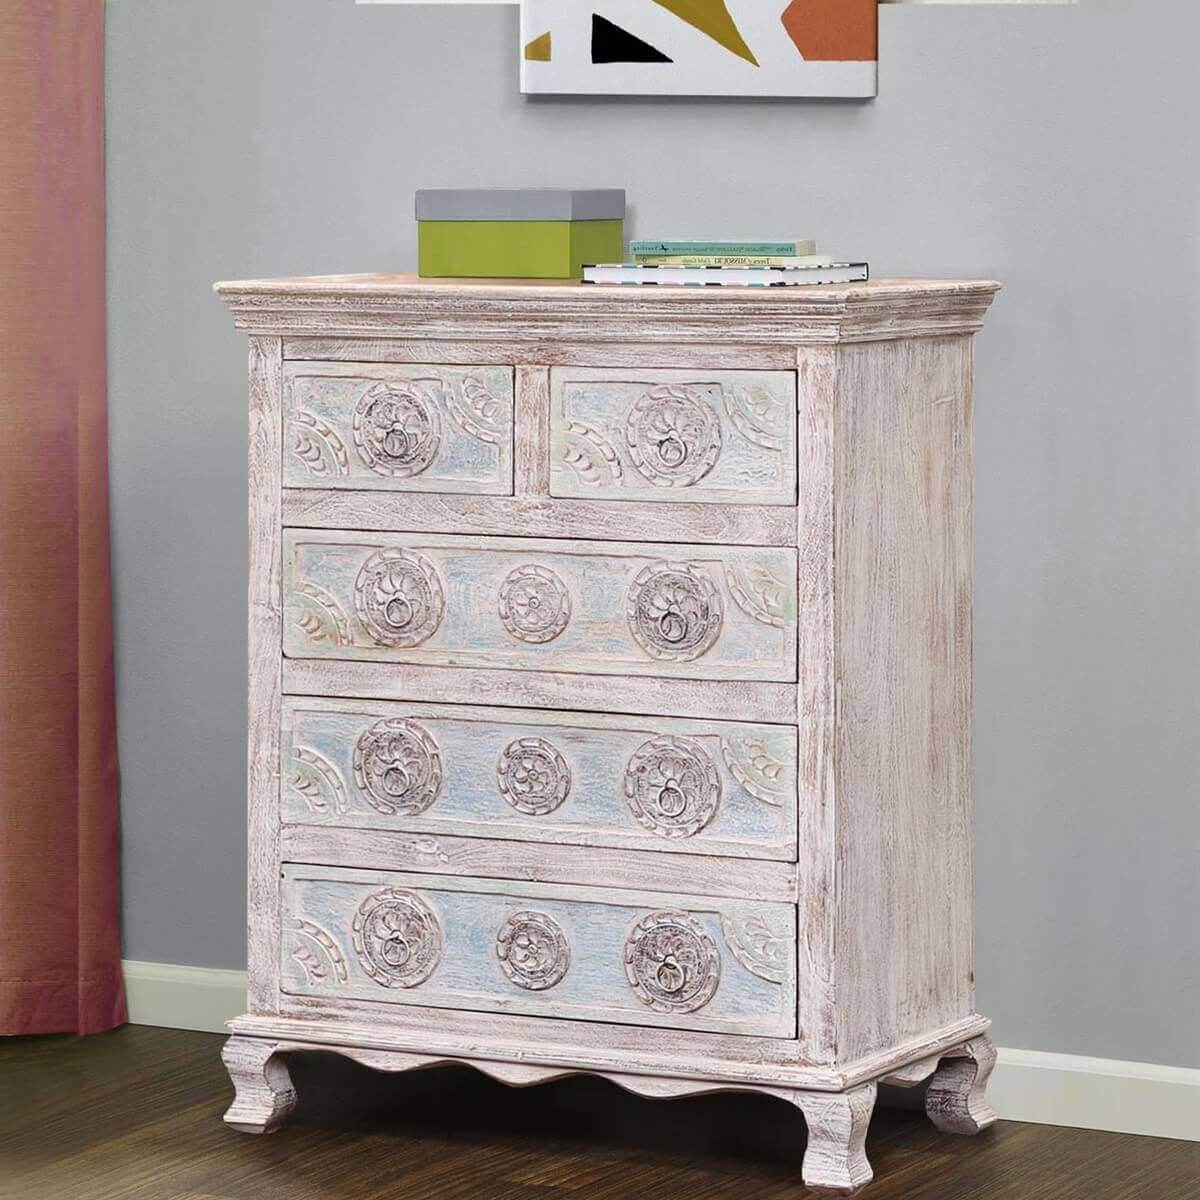 Titon Rococo Inspired Reclaimed Wood White Dresser Chest With 5 Drawers